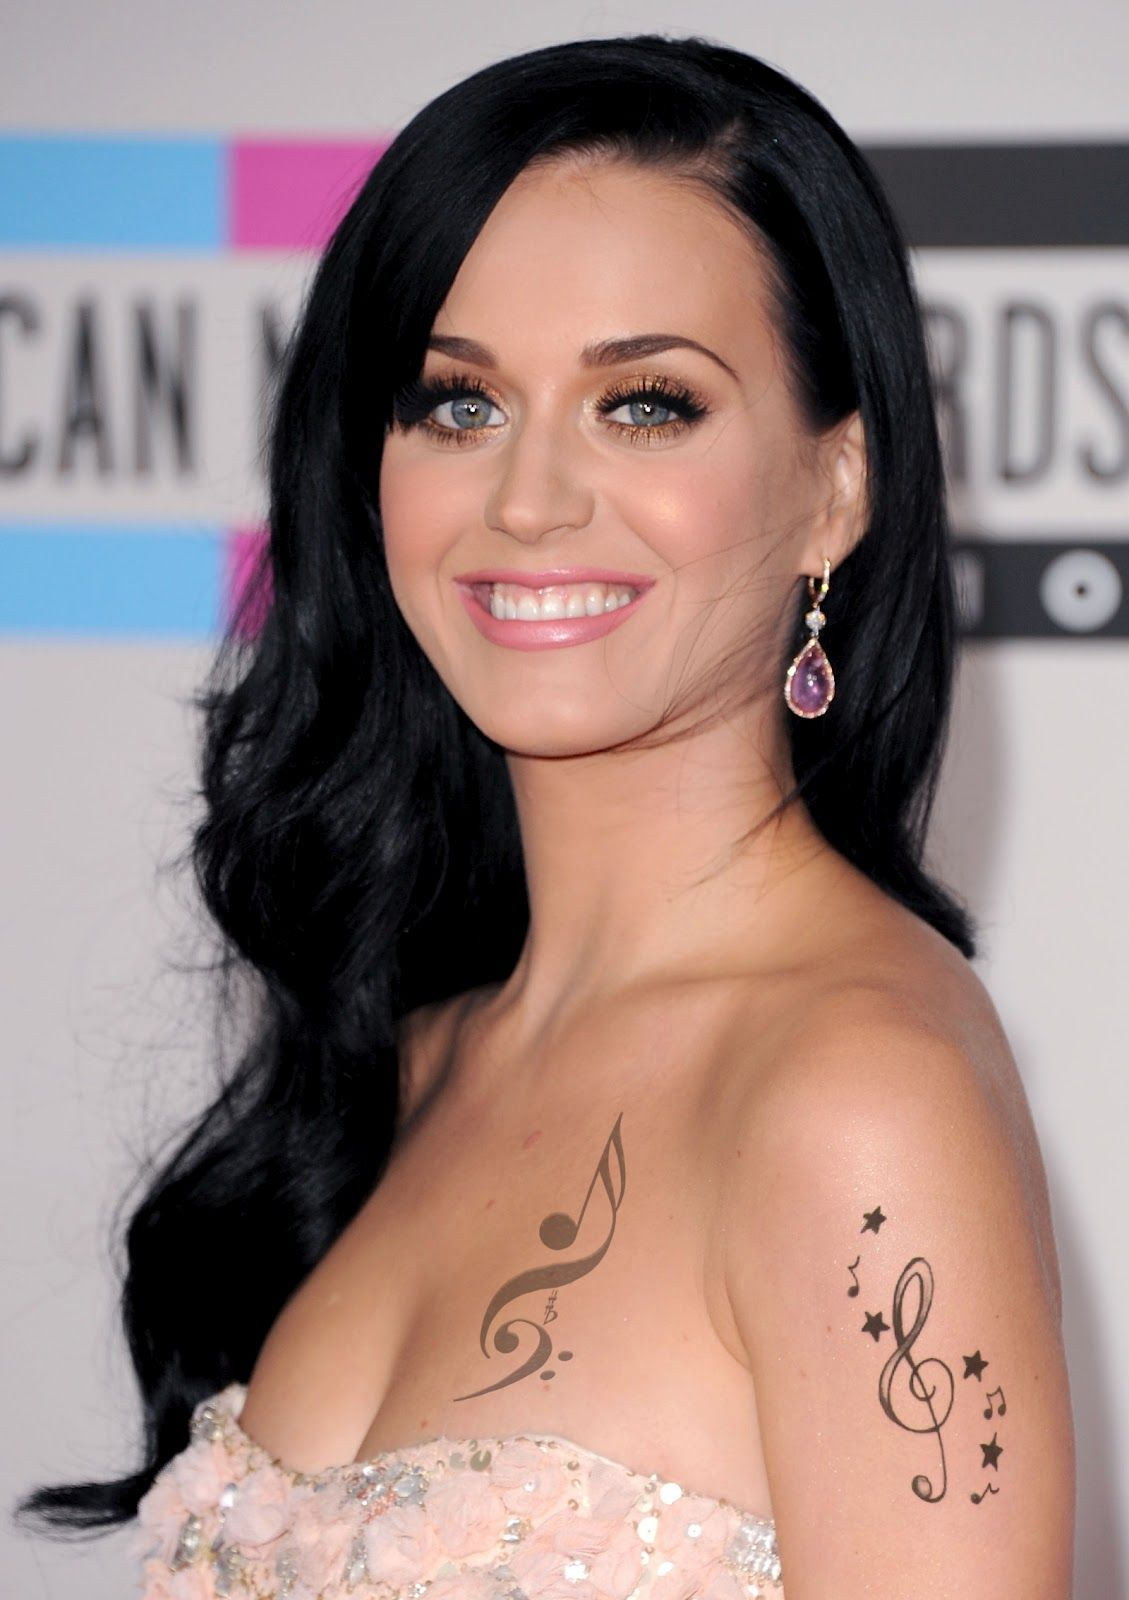 Lets Get Inked Girls Katy Perry Tattoos Katy Perry Tattoo